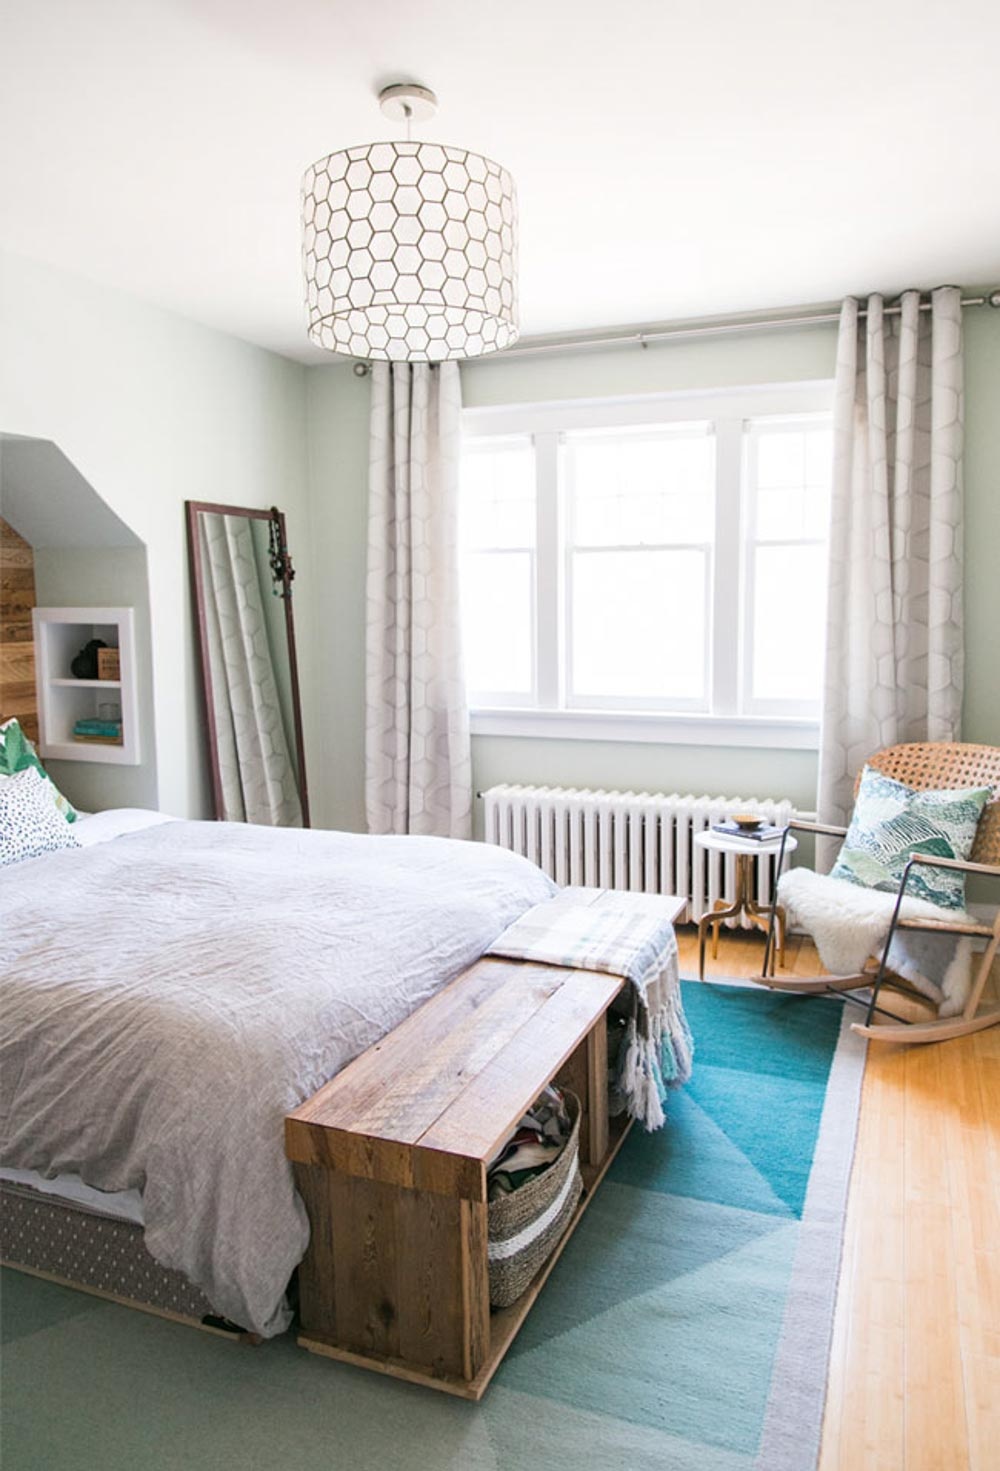 A Stylish Bedroom on a Budget in Toronto | Design*Sponge